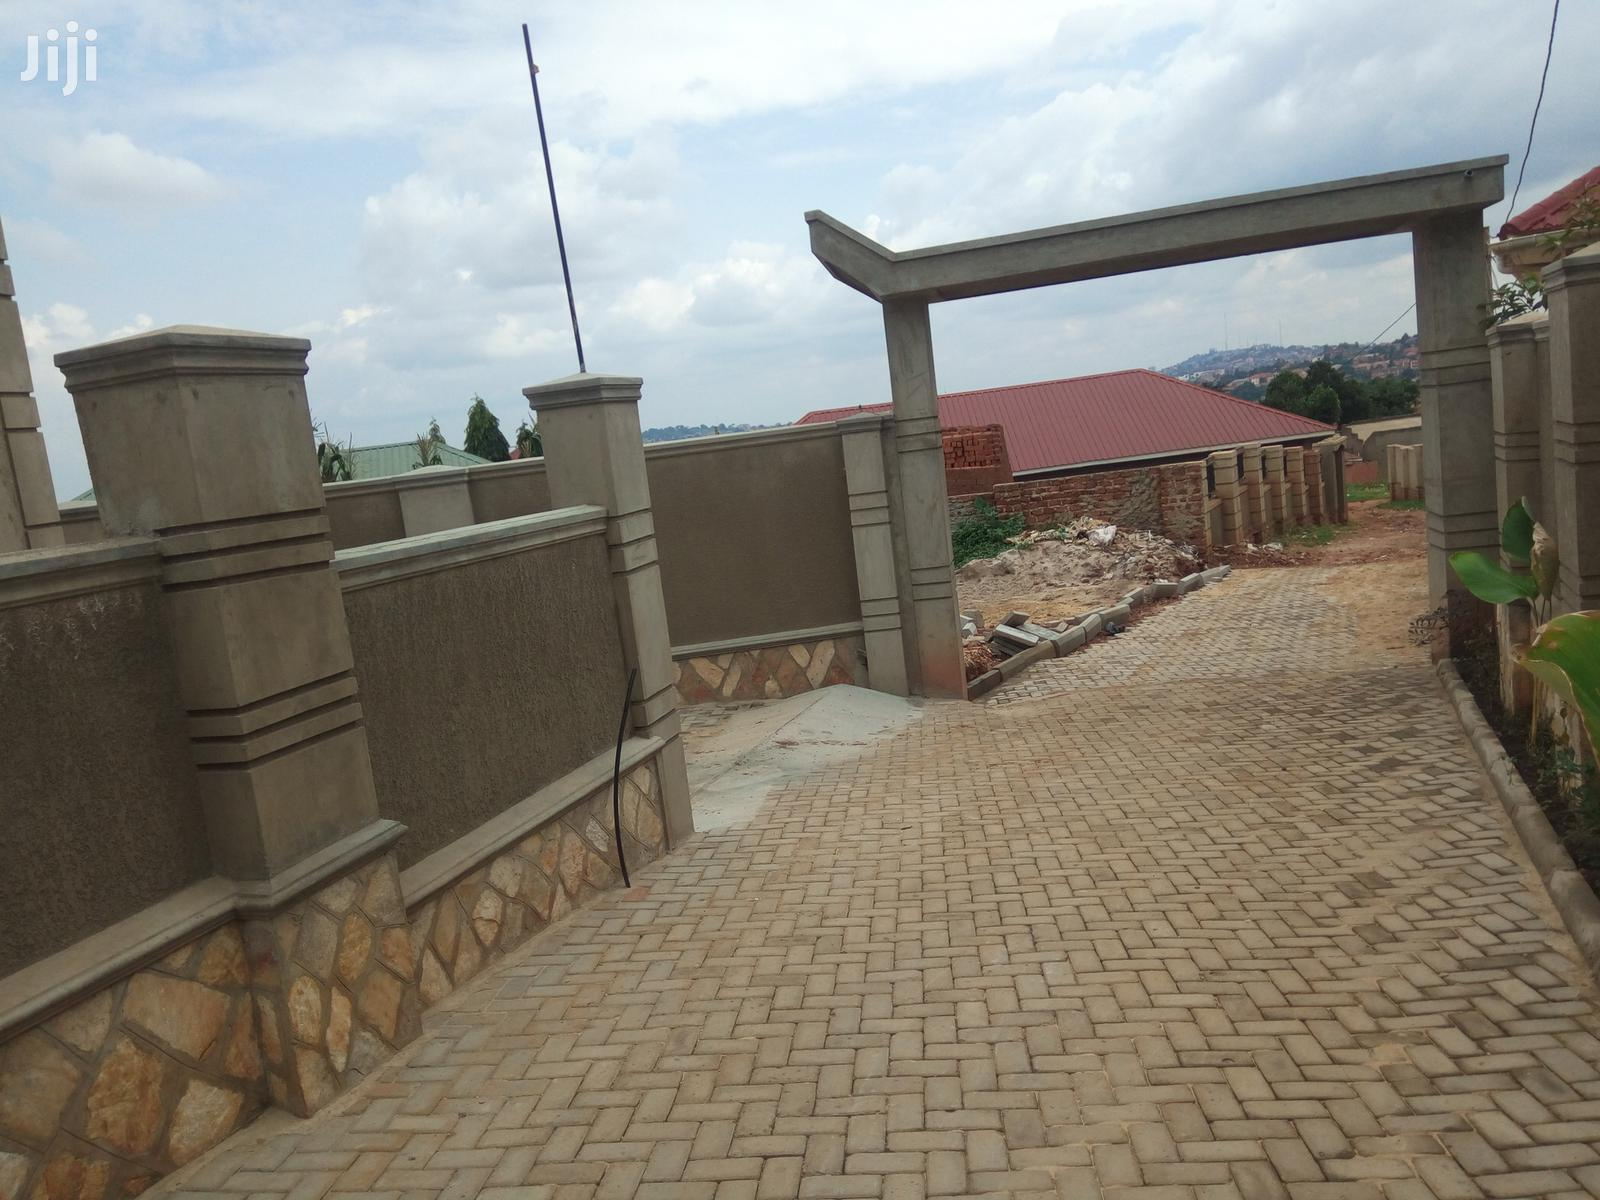 Villa In Kira Town For Sale | Houses & Apartments For Sale for sale in Kampala, Central Region, Uganda